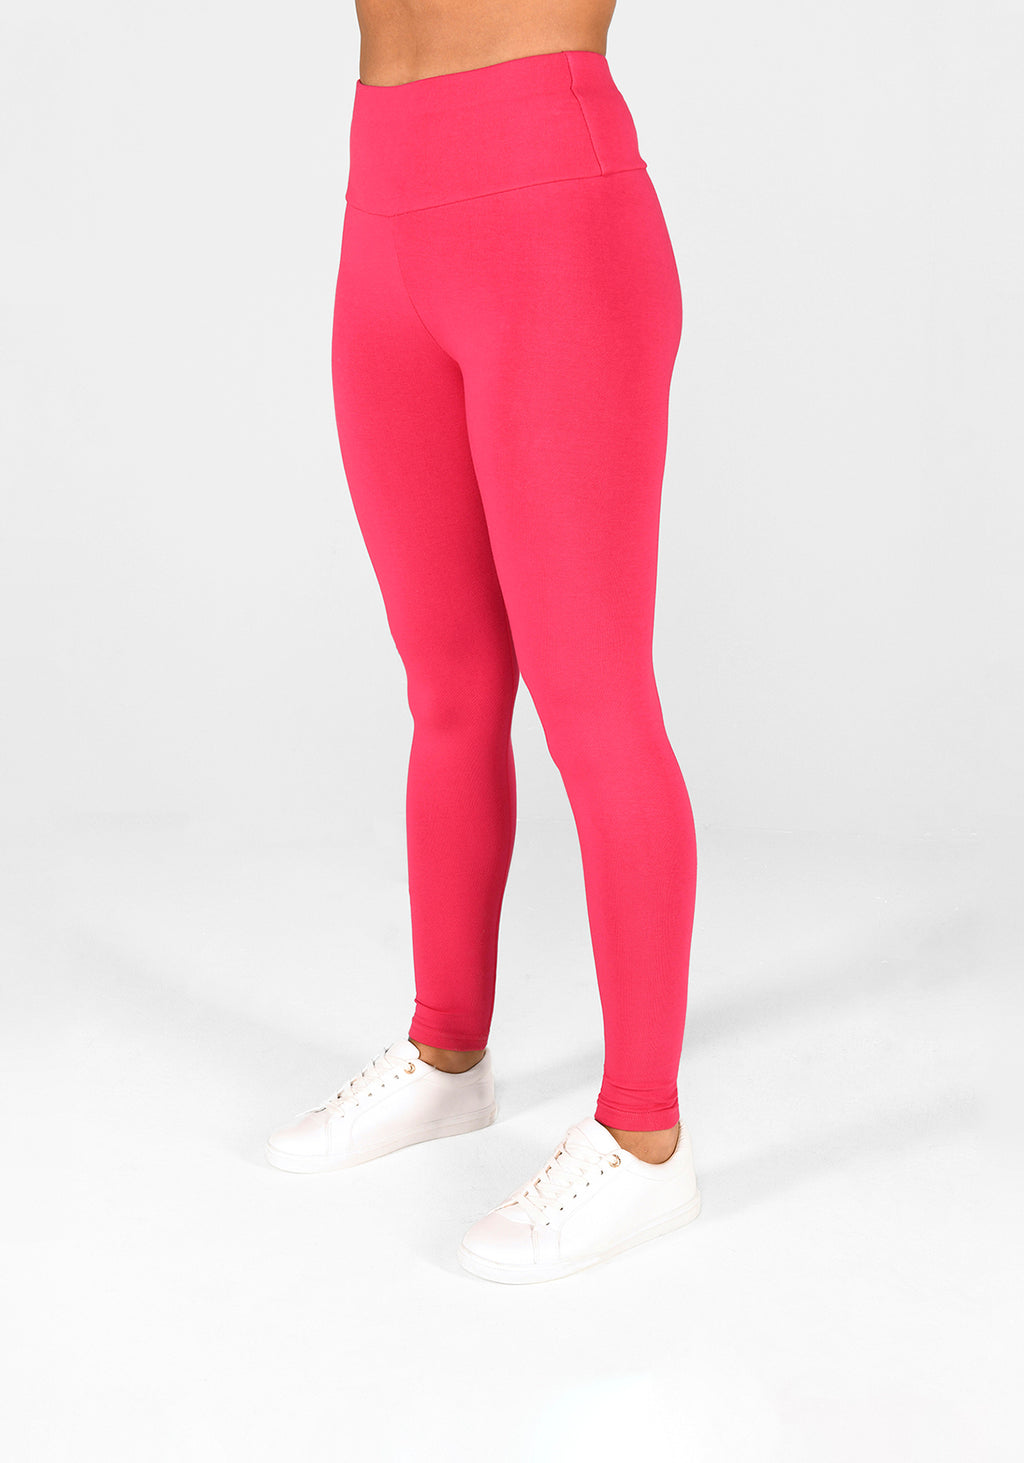 Intense Pink High Waisted Leggings